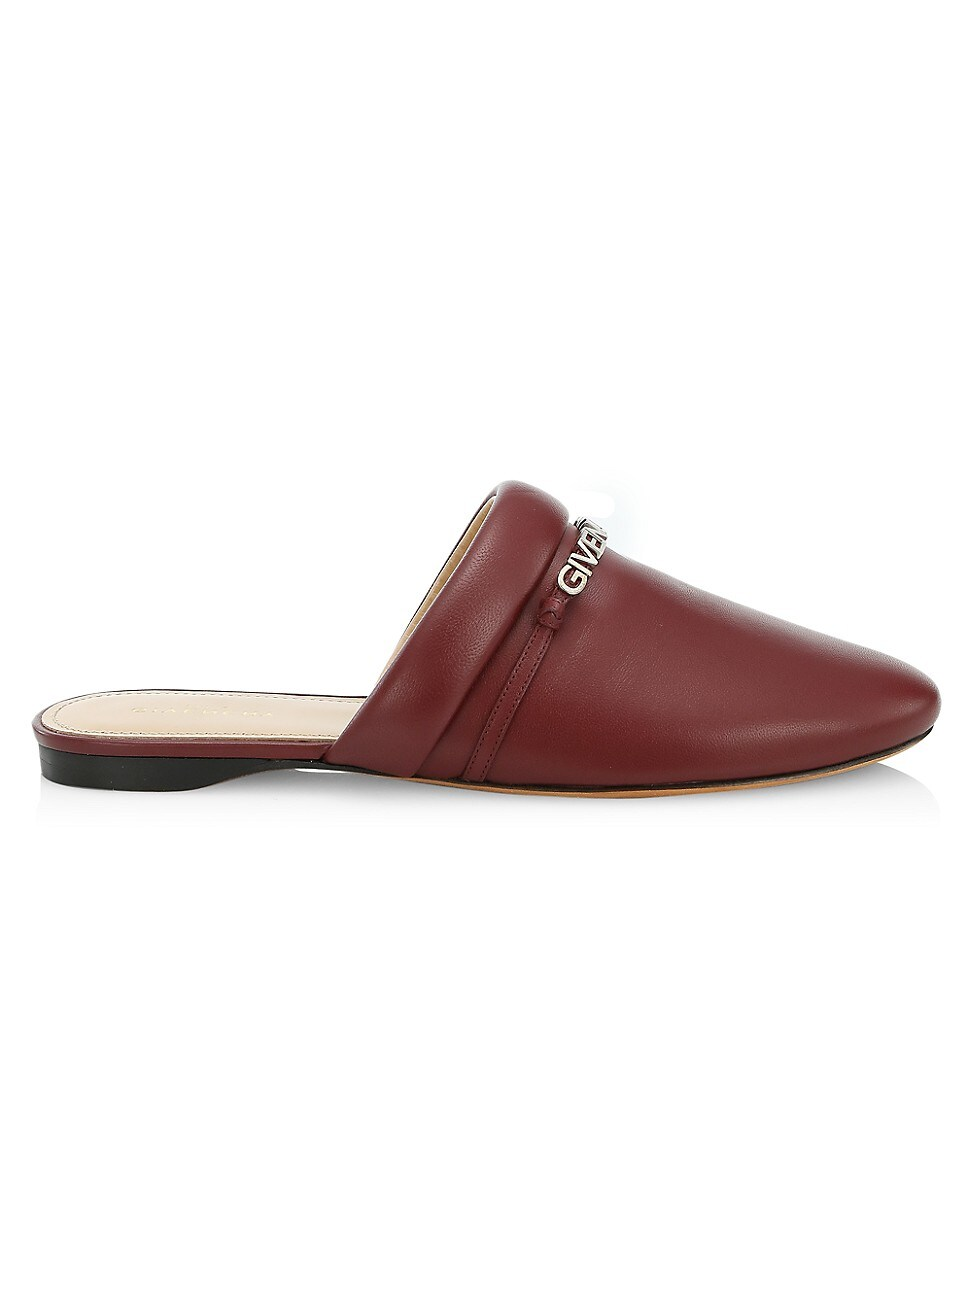 Givenchy WOMEN'S ELBA LEATHER FLAT SLIPPERS